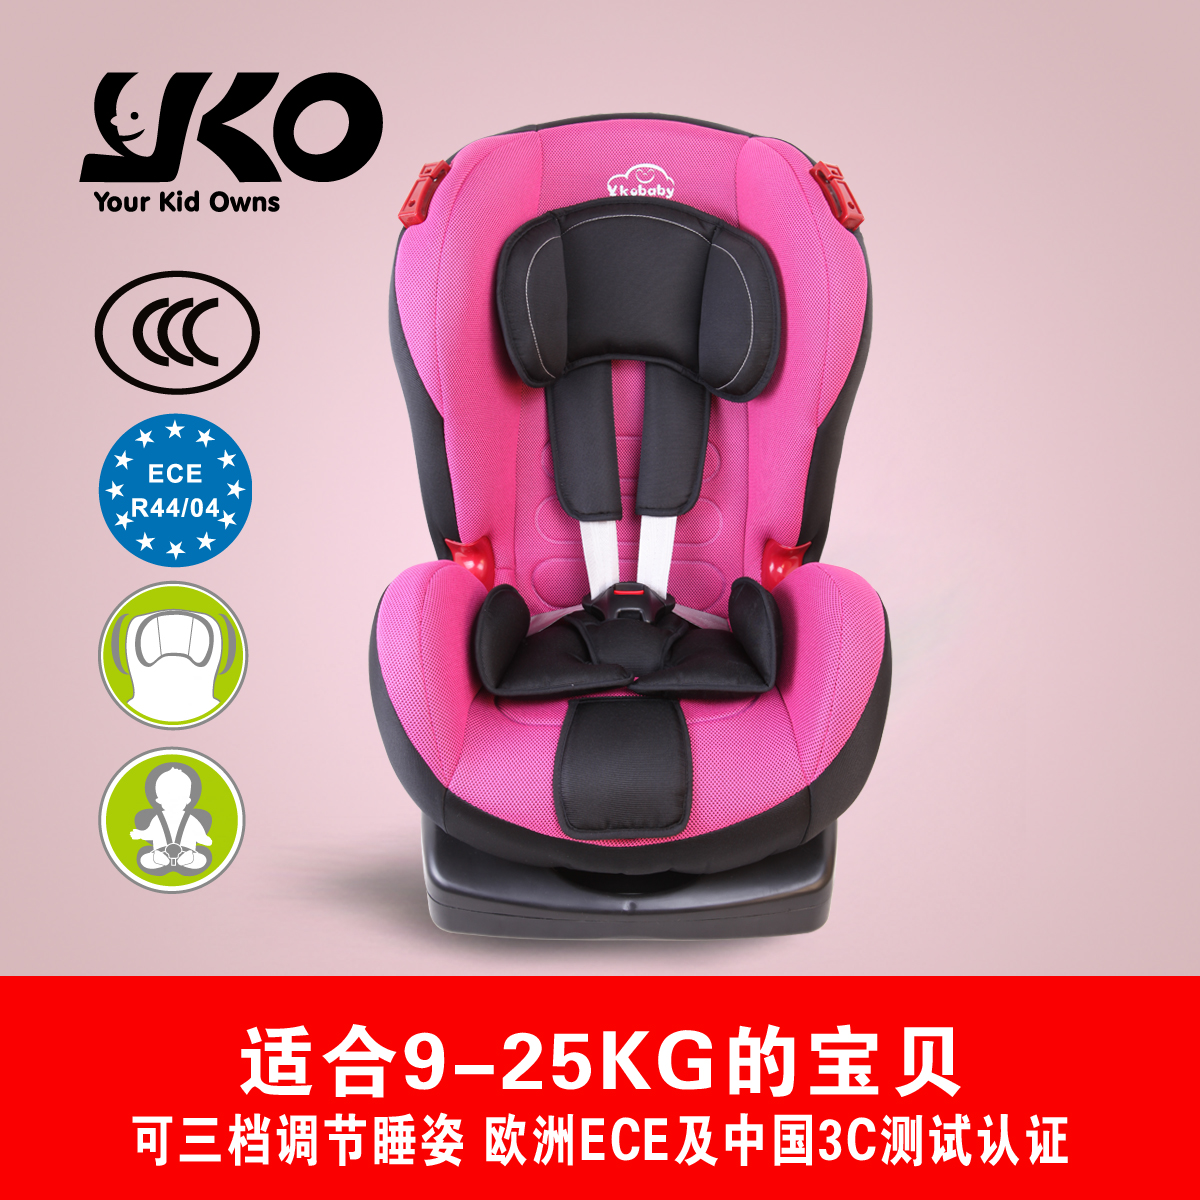 <a href='http://www.ykobaby.cn/' title='儿童安全汽车座椅'><strong>儿童安全汽车座椅</strong></a>